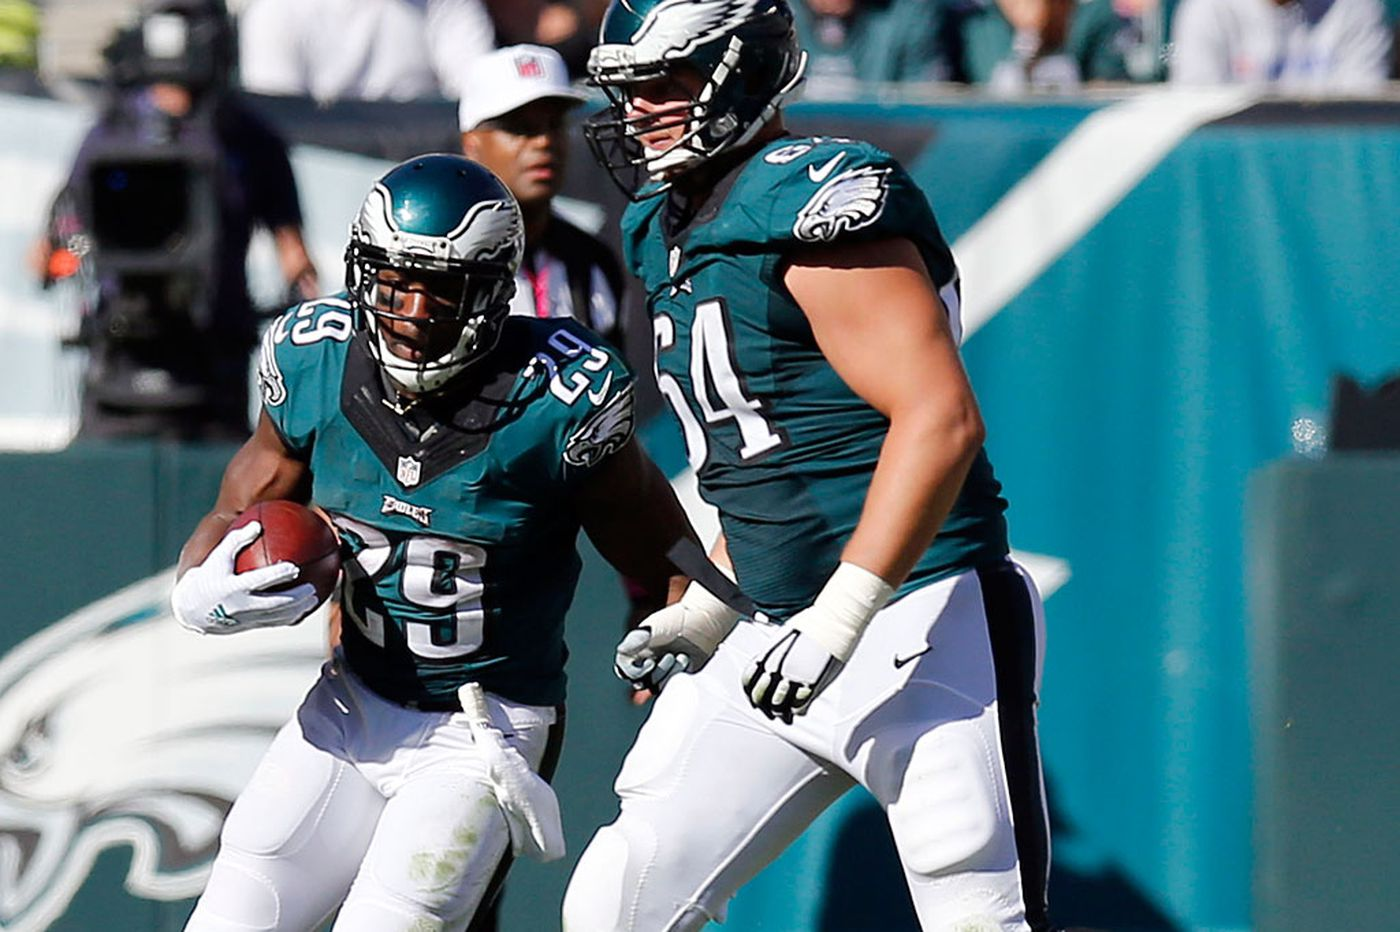 Chip Kelly: Success started with the blocking